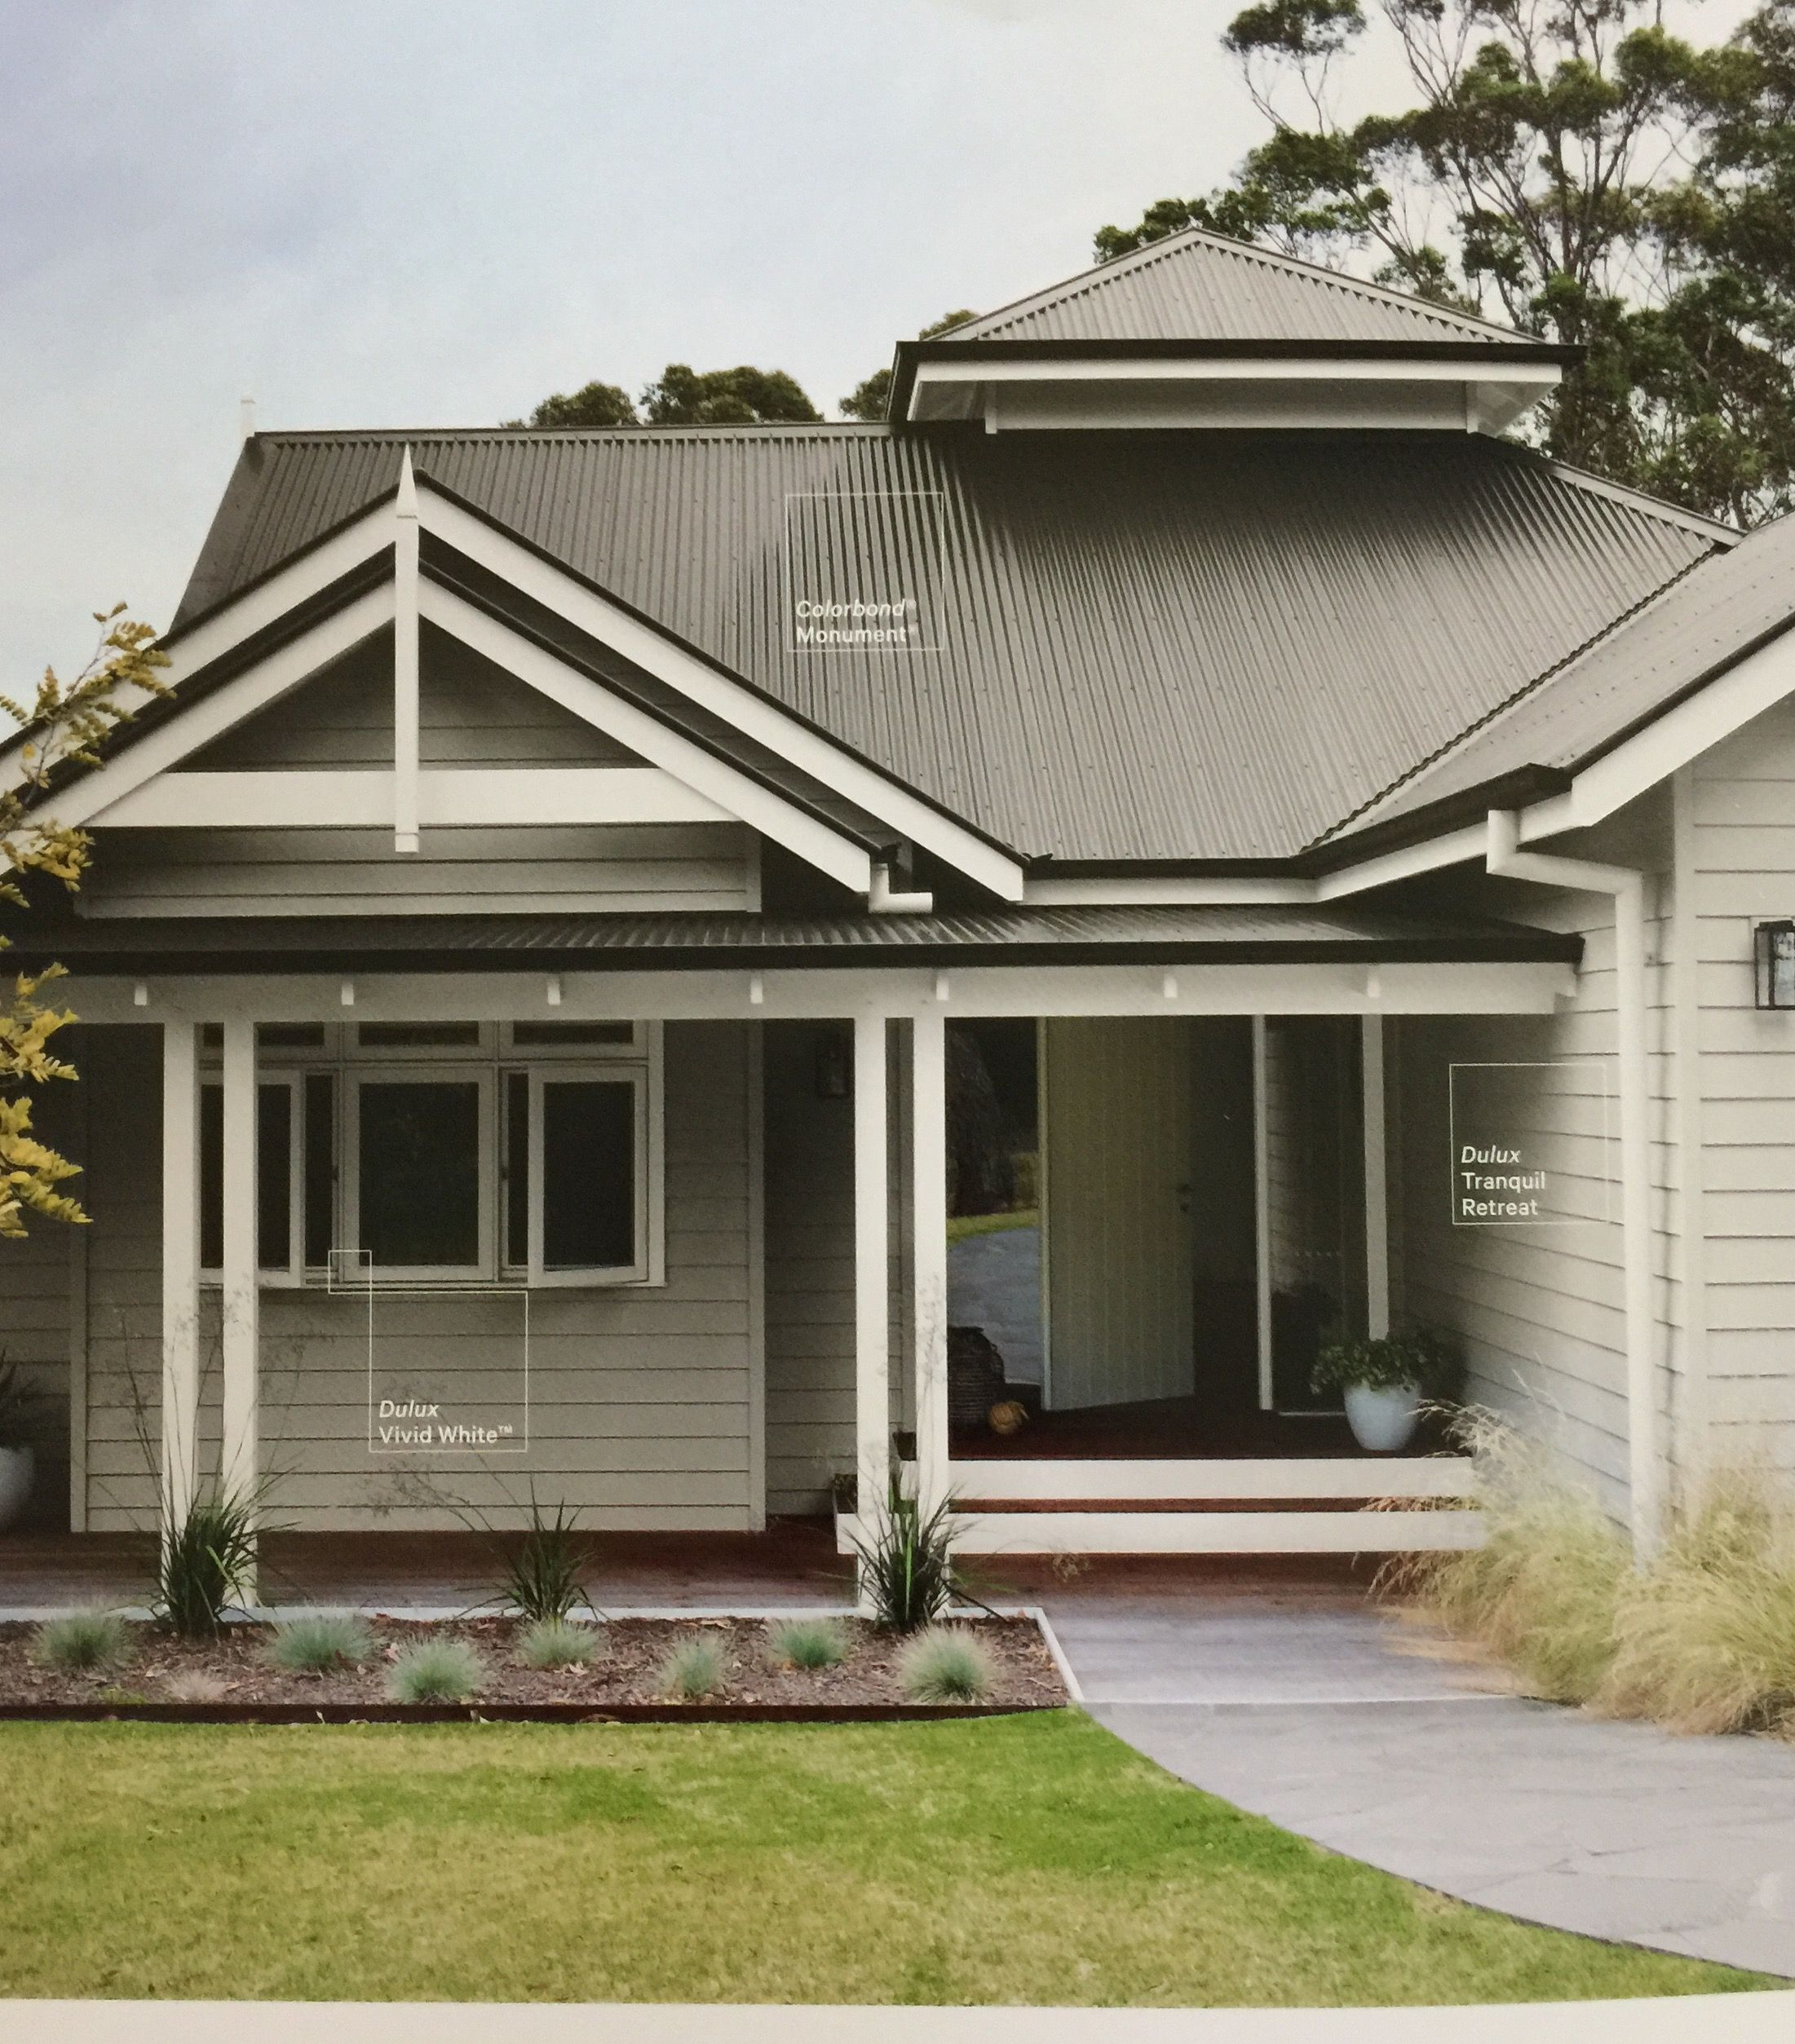 Traditional australia federation exterior inspirations paint - Colorbond Monument Exterior Pinterest Roof Colors House And Exterior Colors